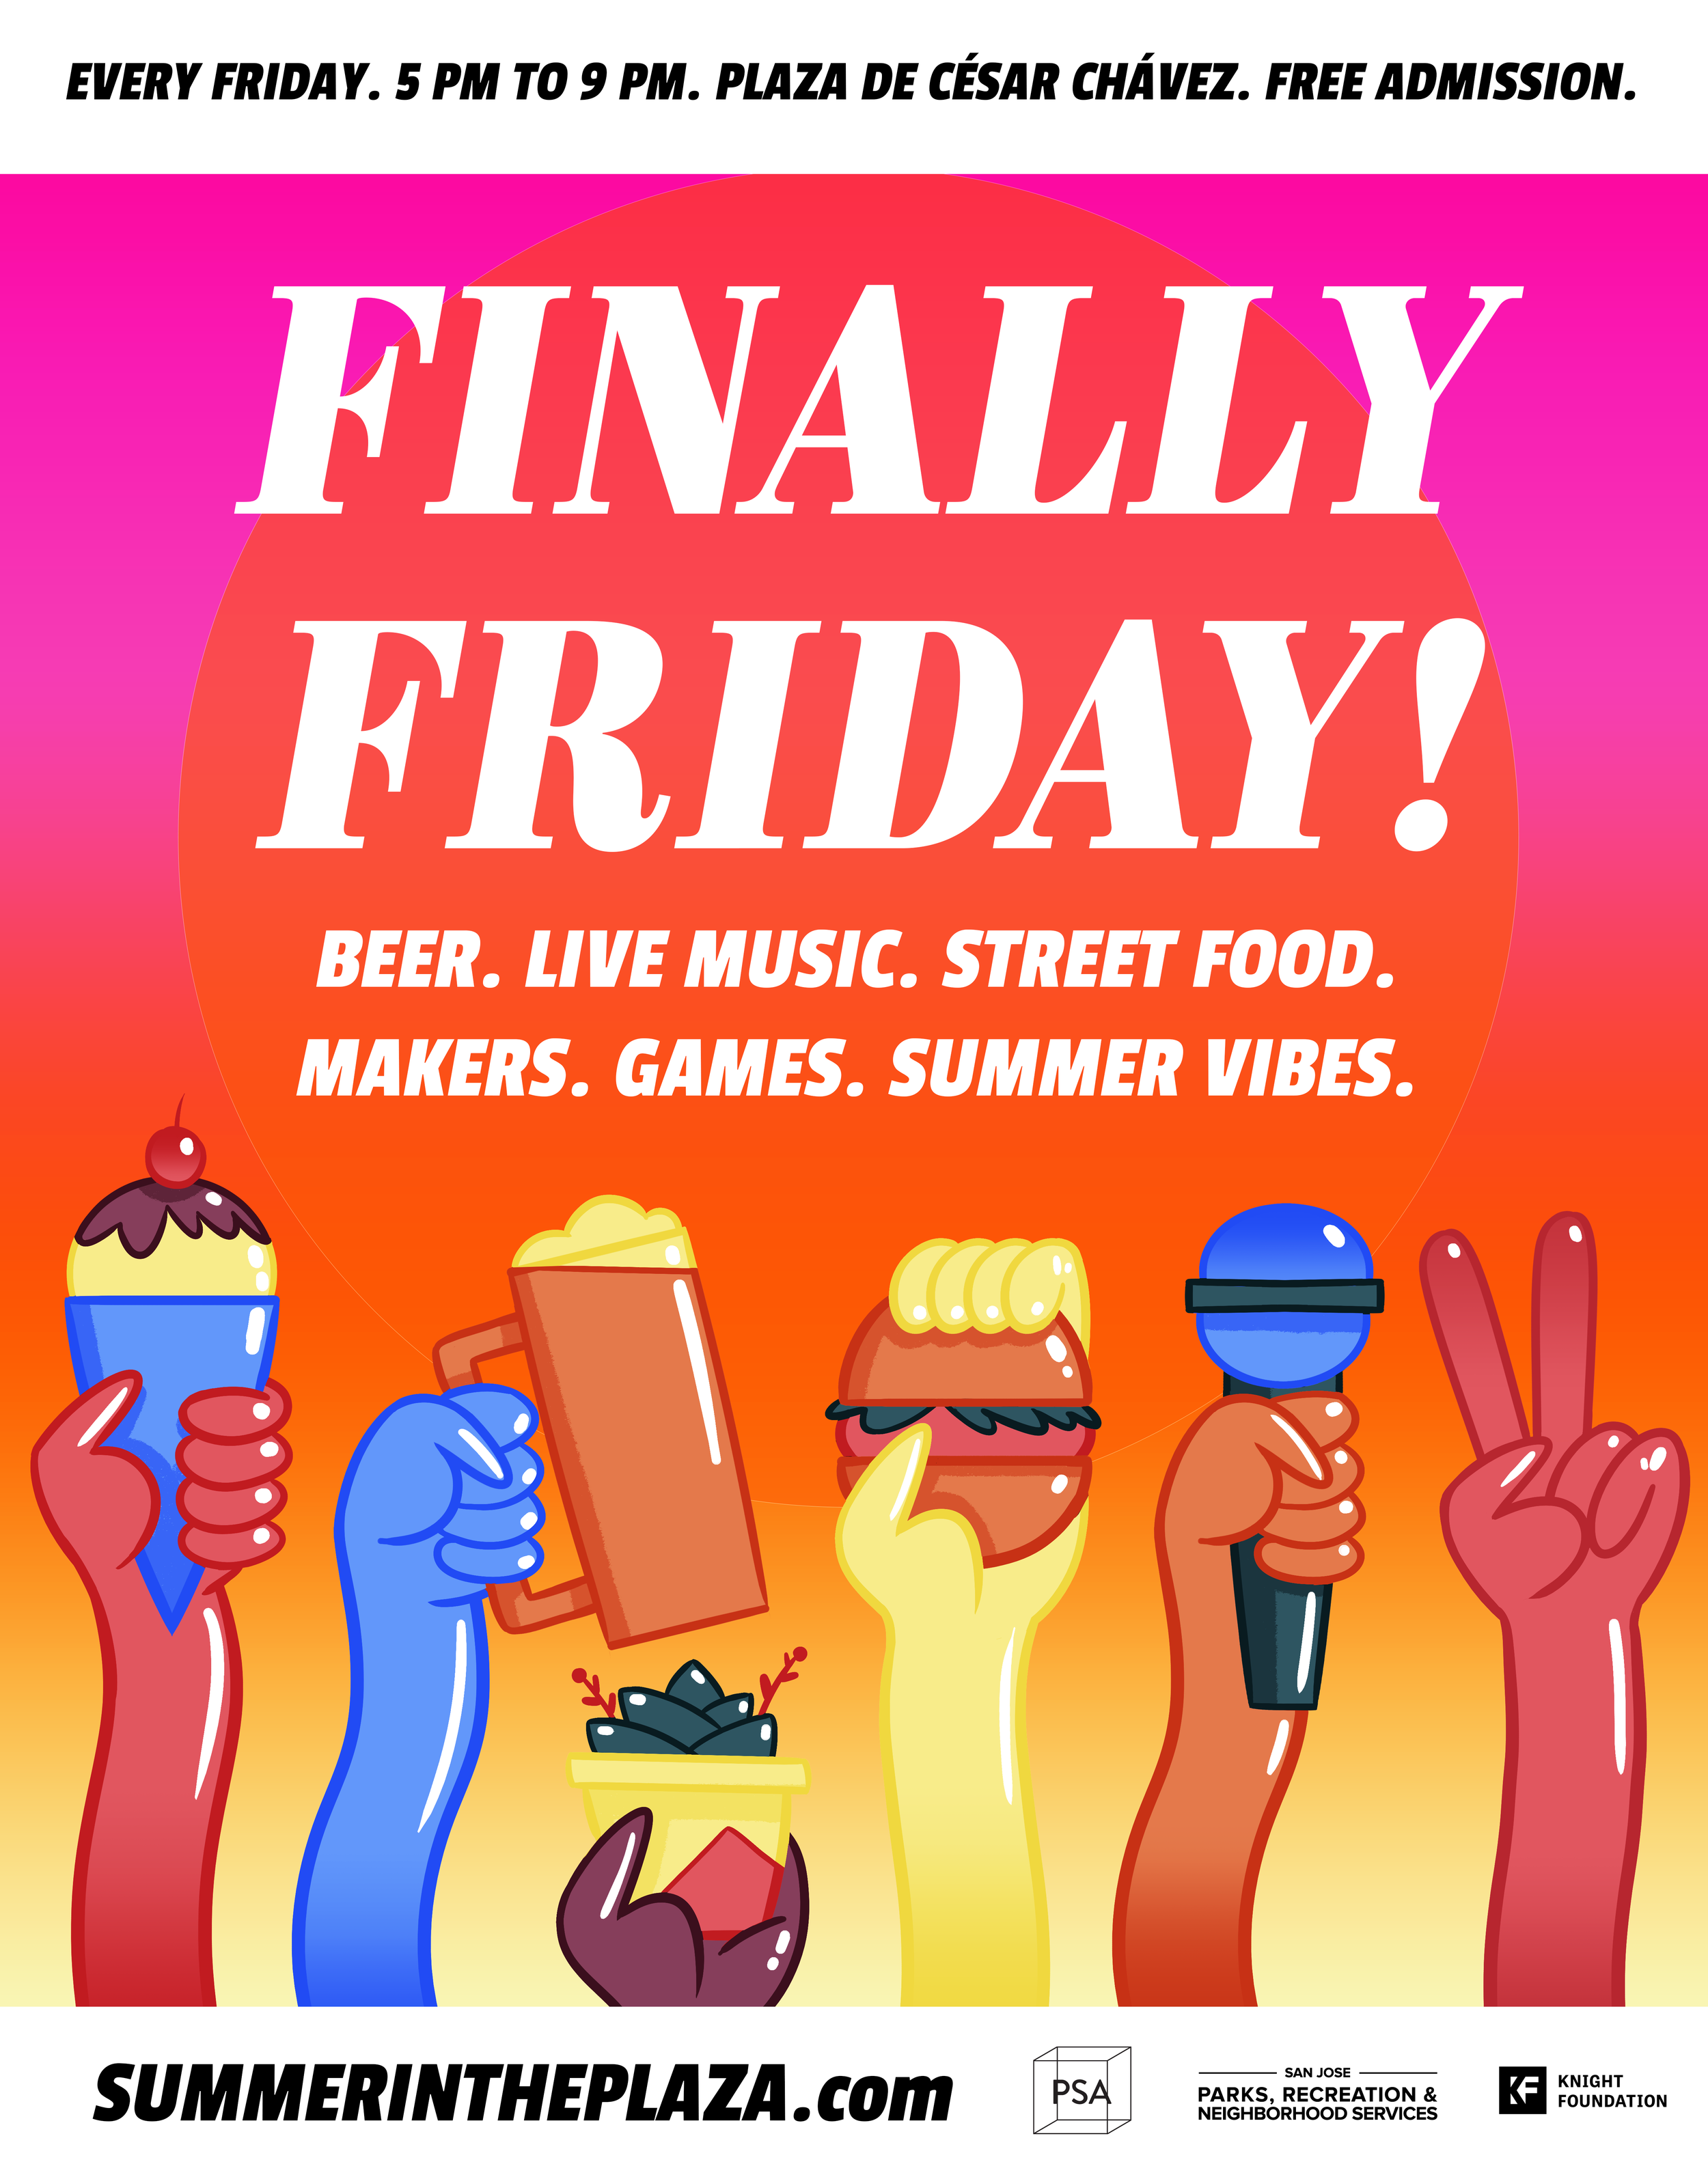 2018_Summer-in-the-Plaza_Finally-Friday_Poster.png